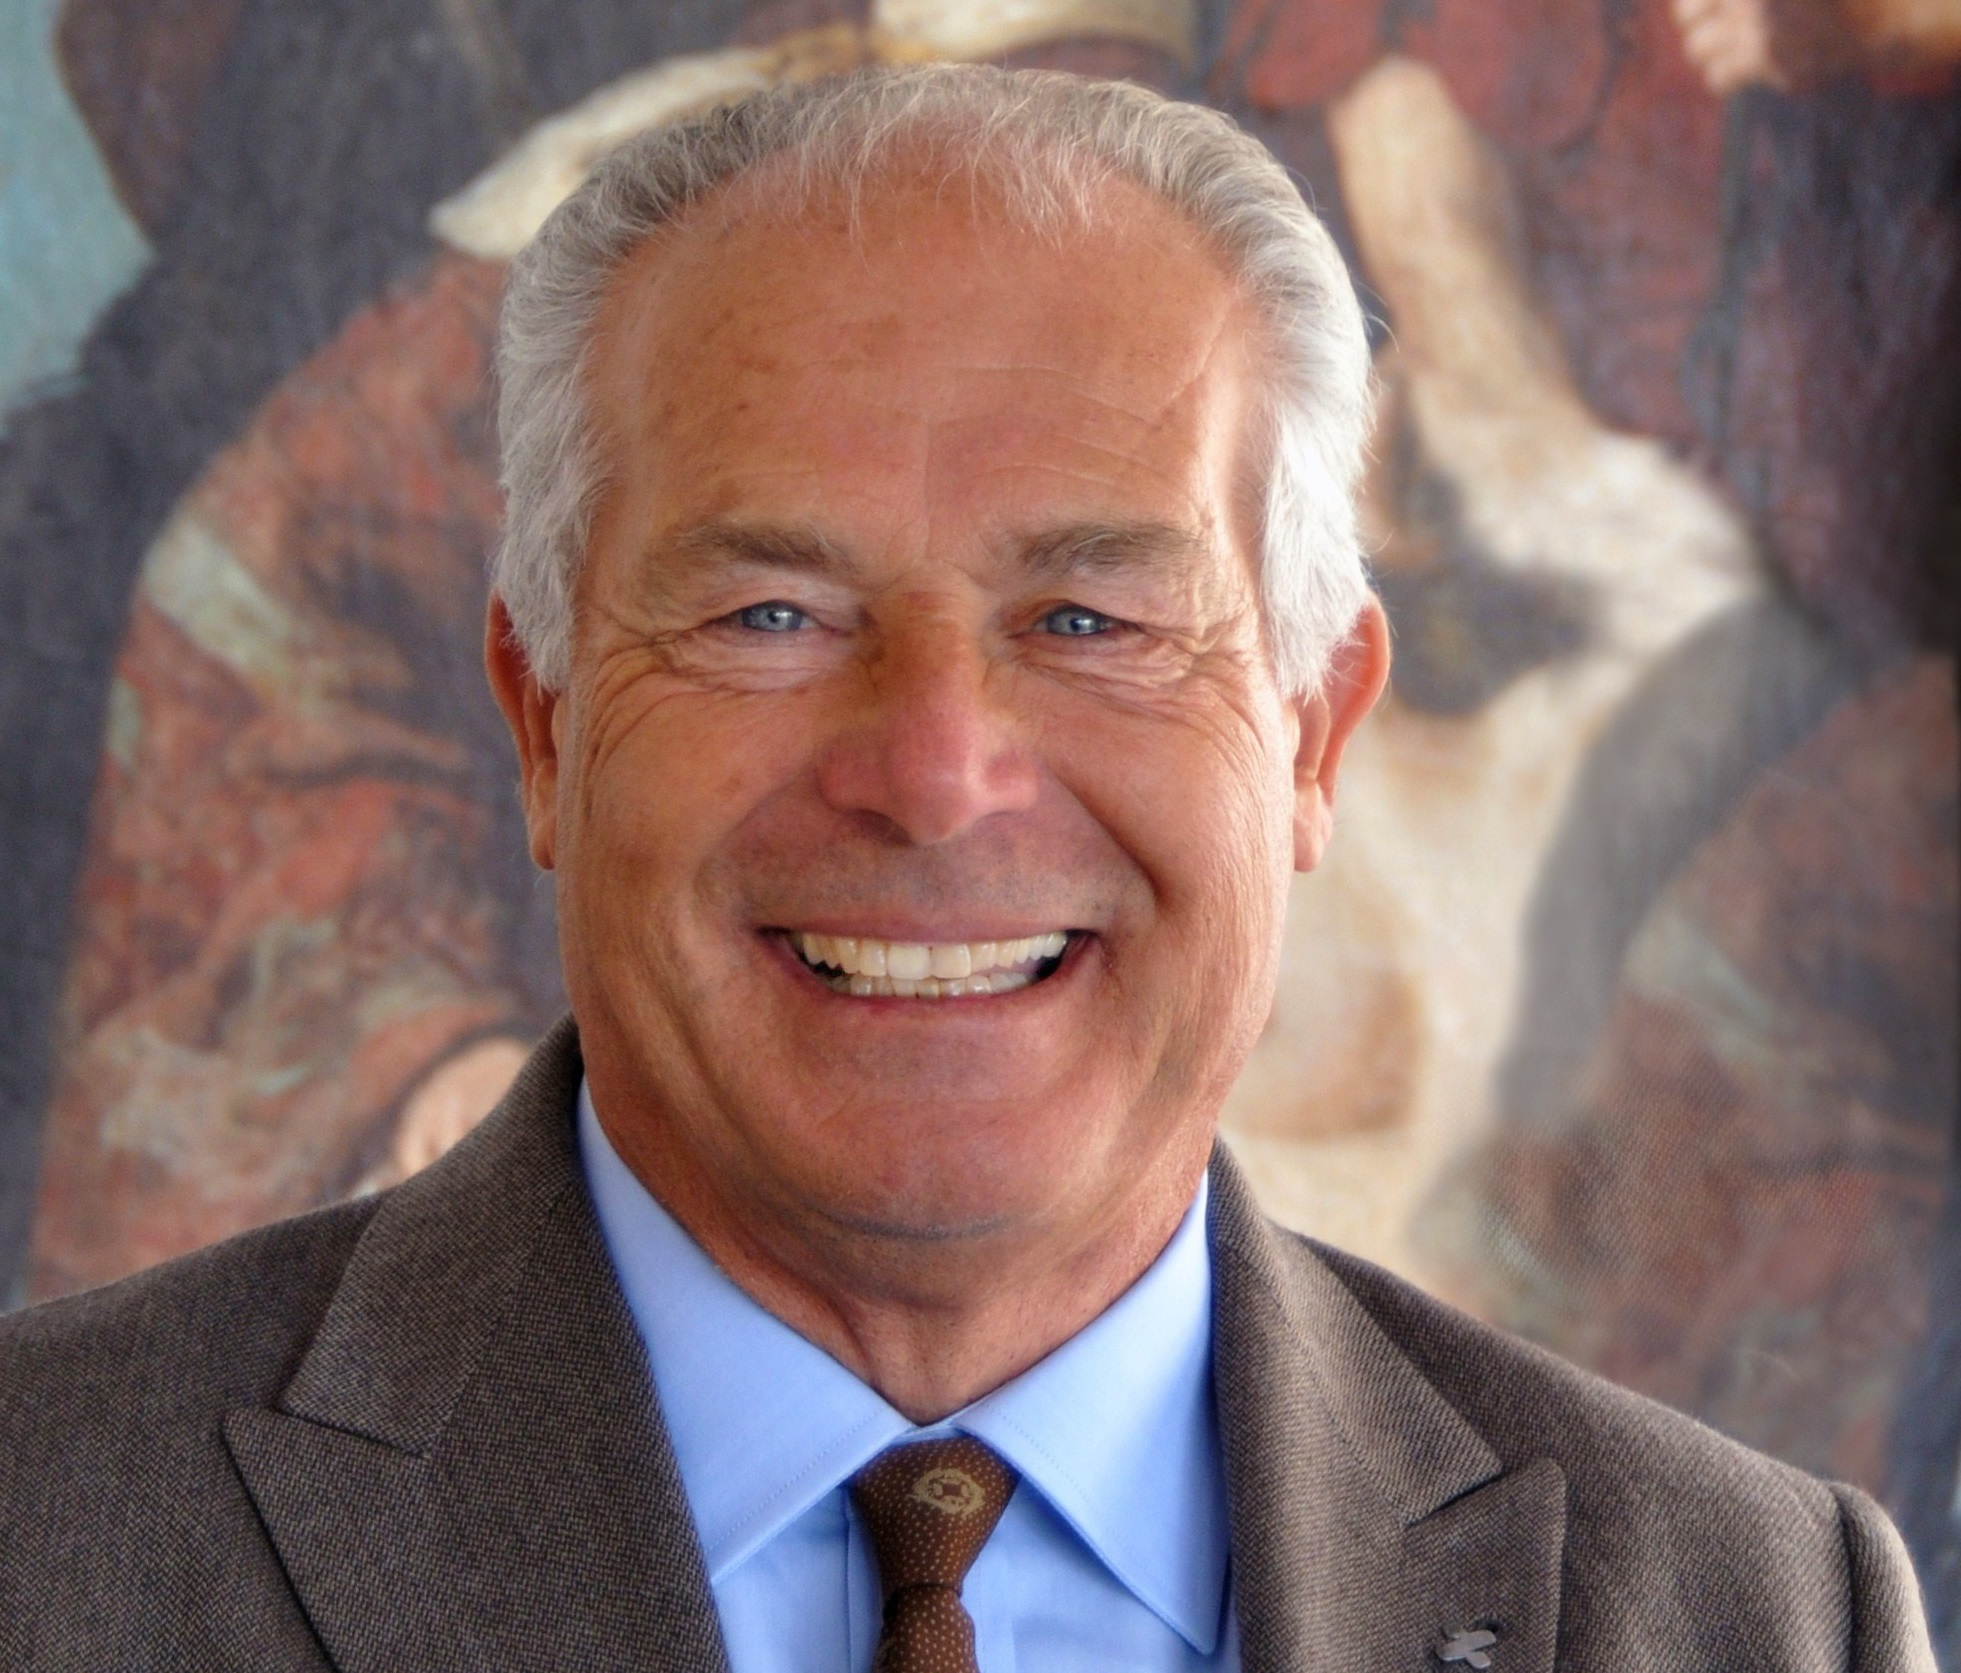 Giuseppe Nardella, chairman of the publishing group Tecniche Nuove